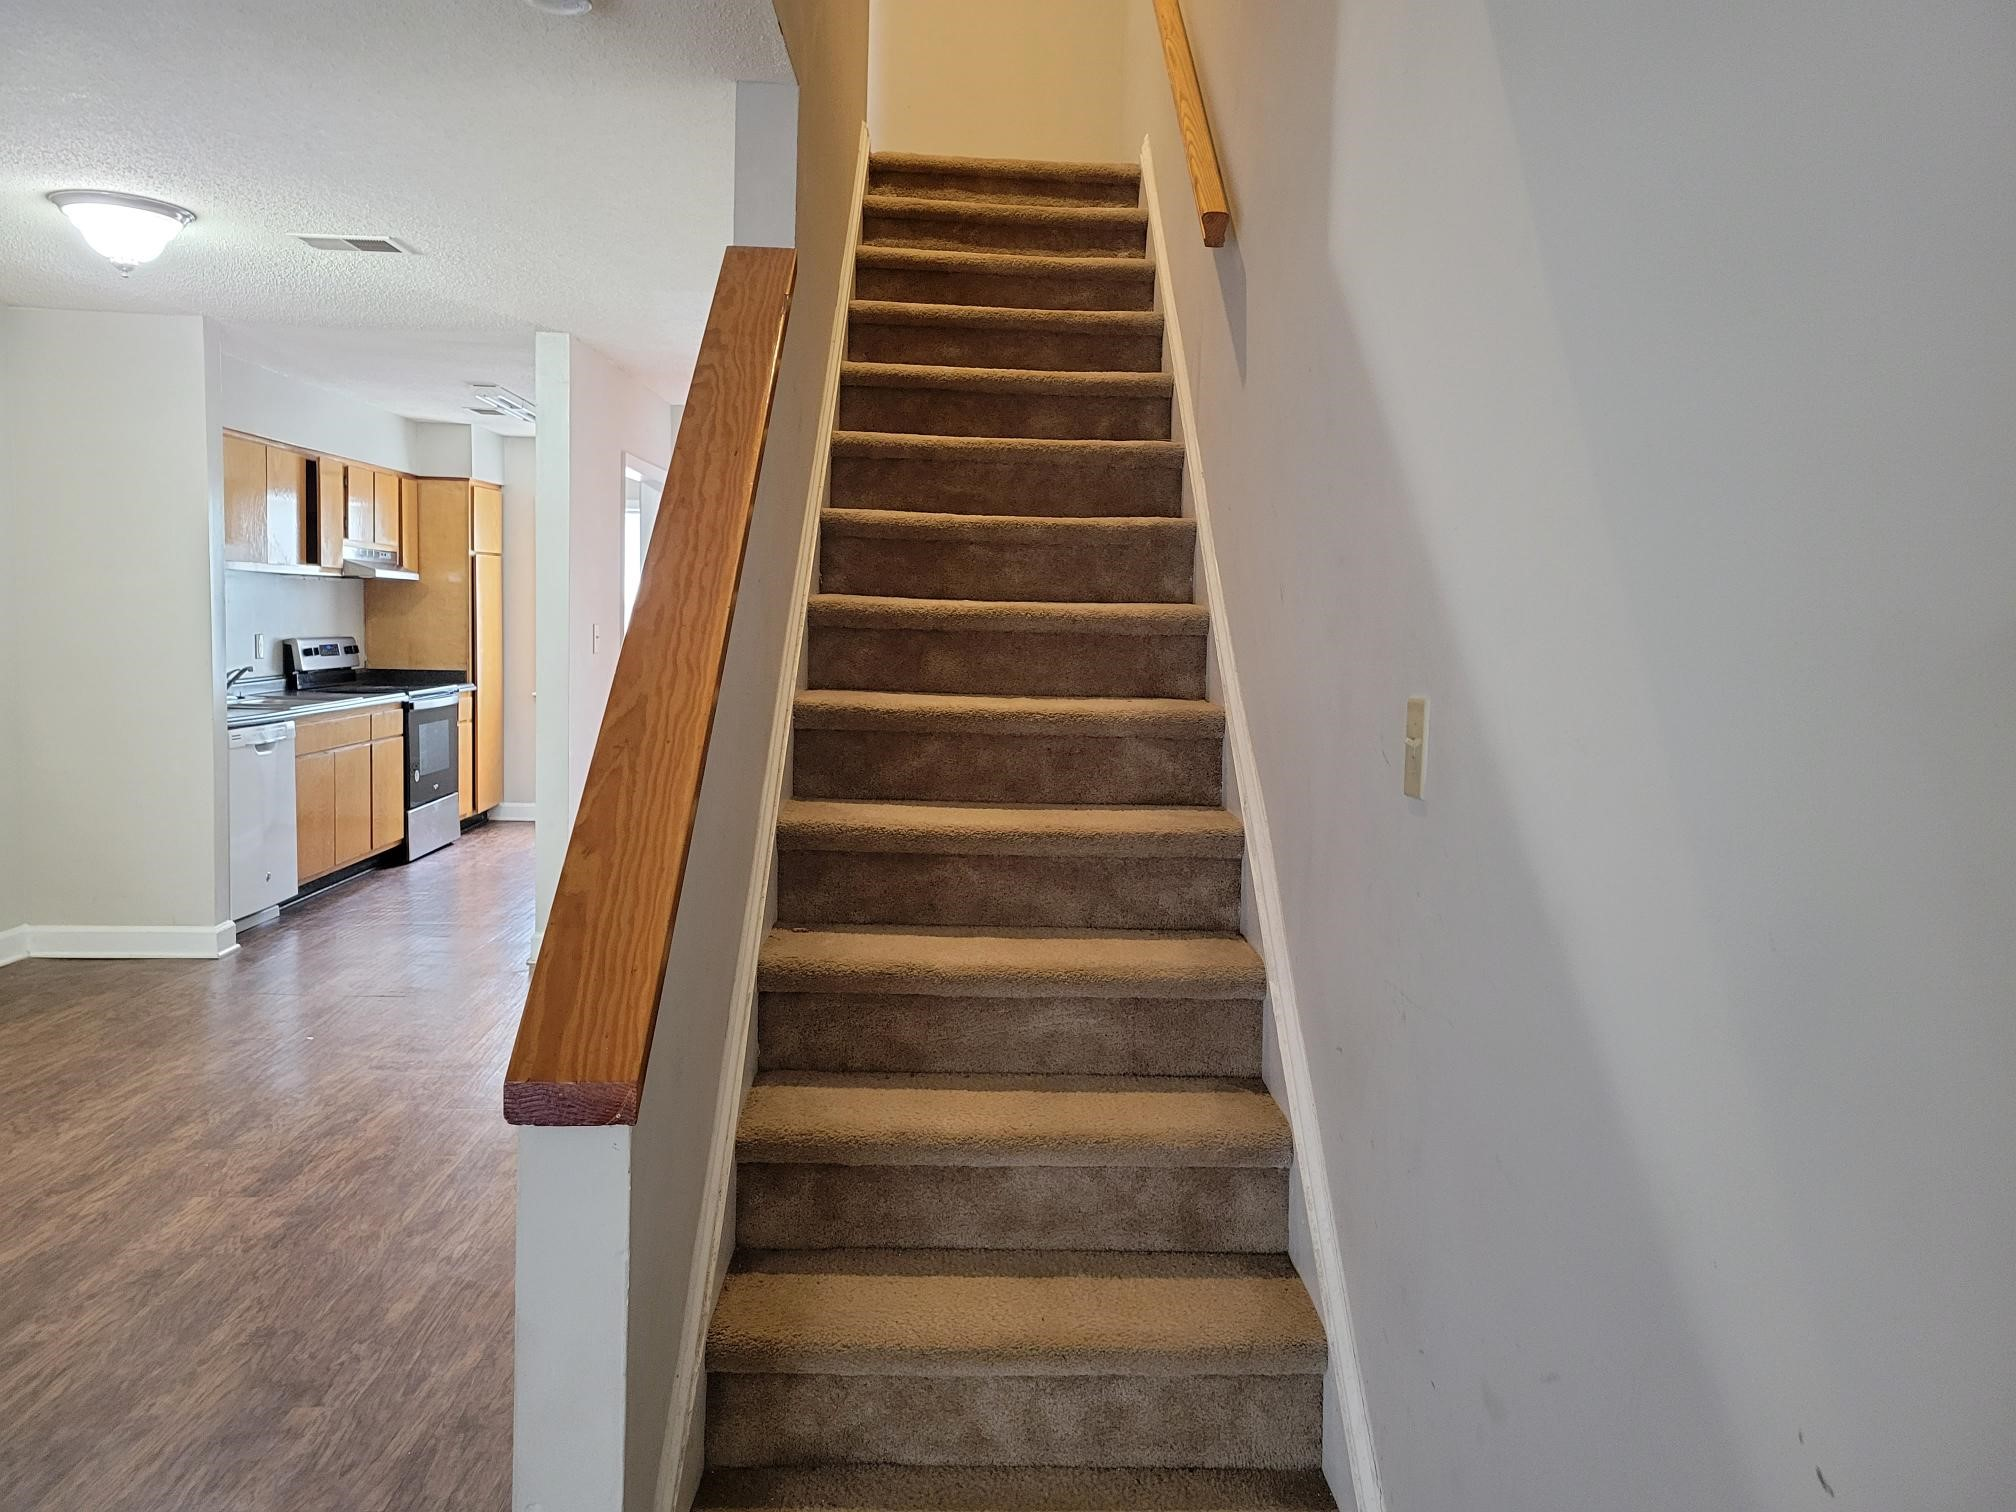 Image of 2504-205 Avent Ferry Rd Raleigh, NC 27606